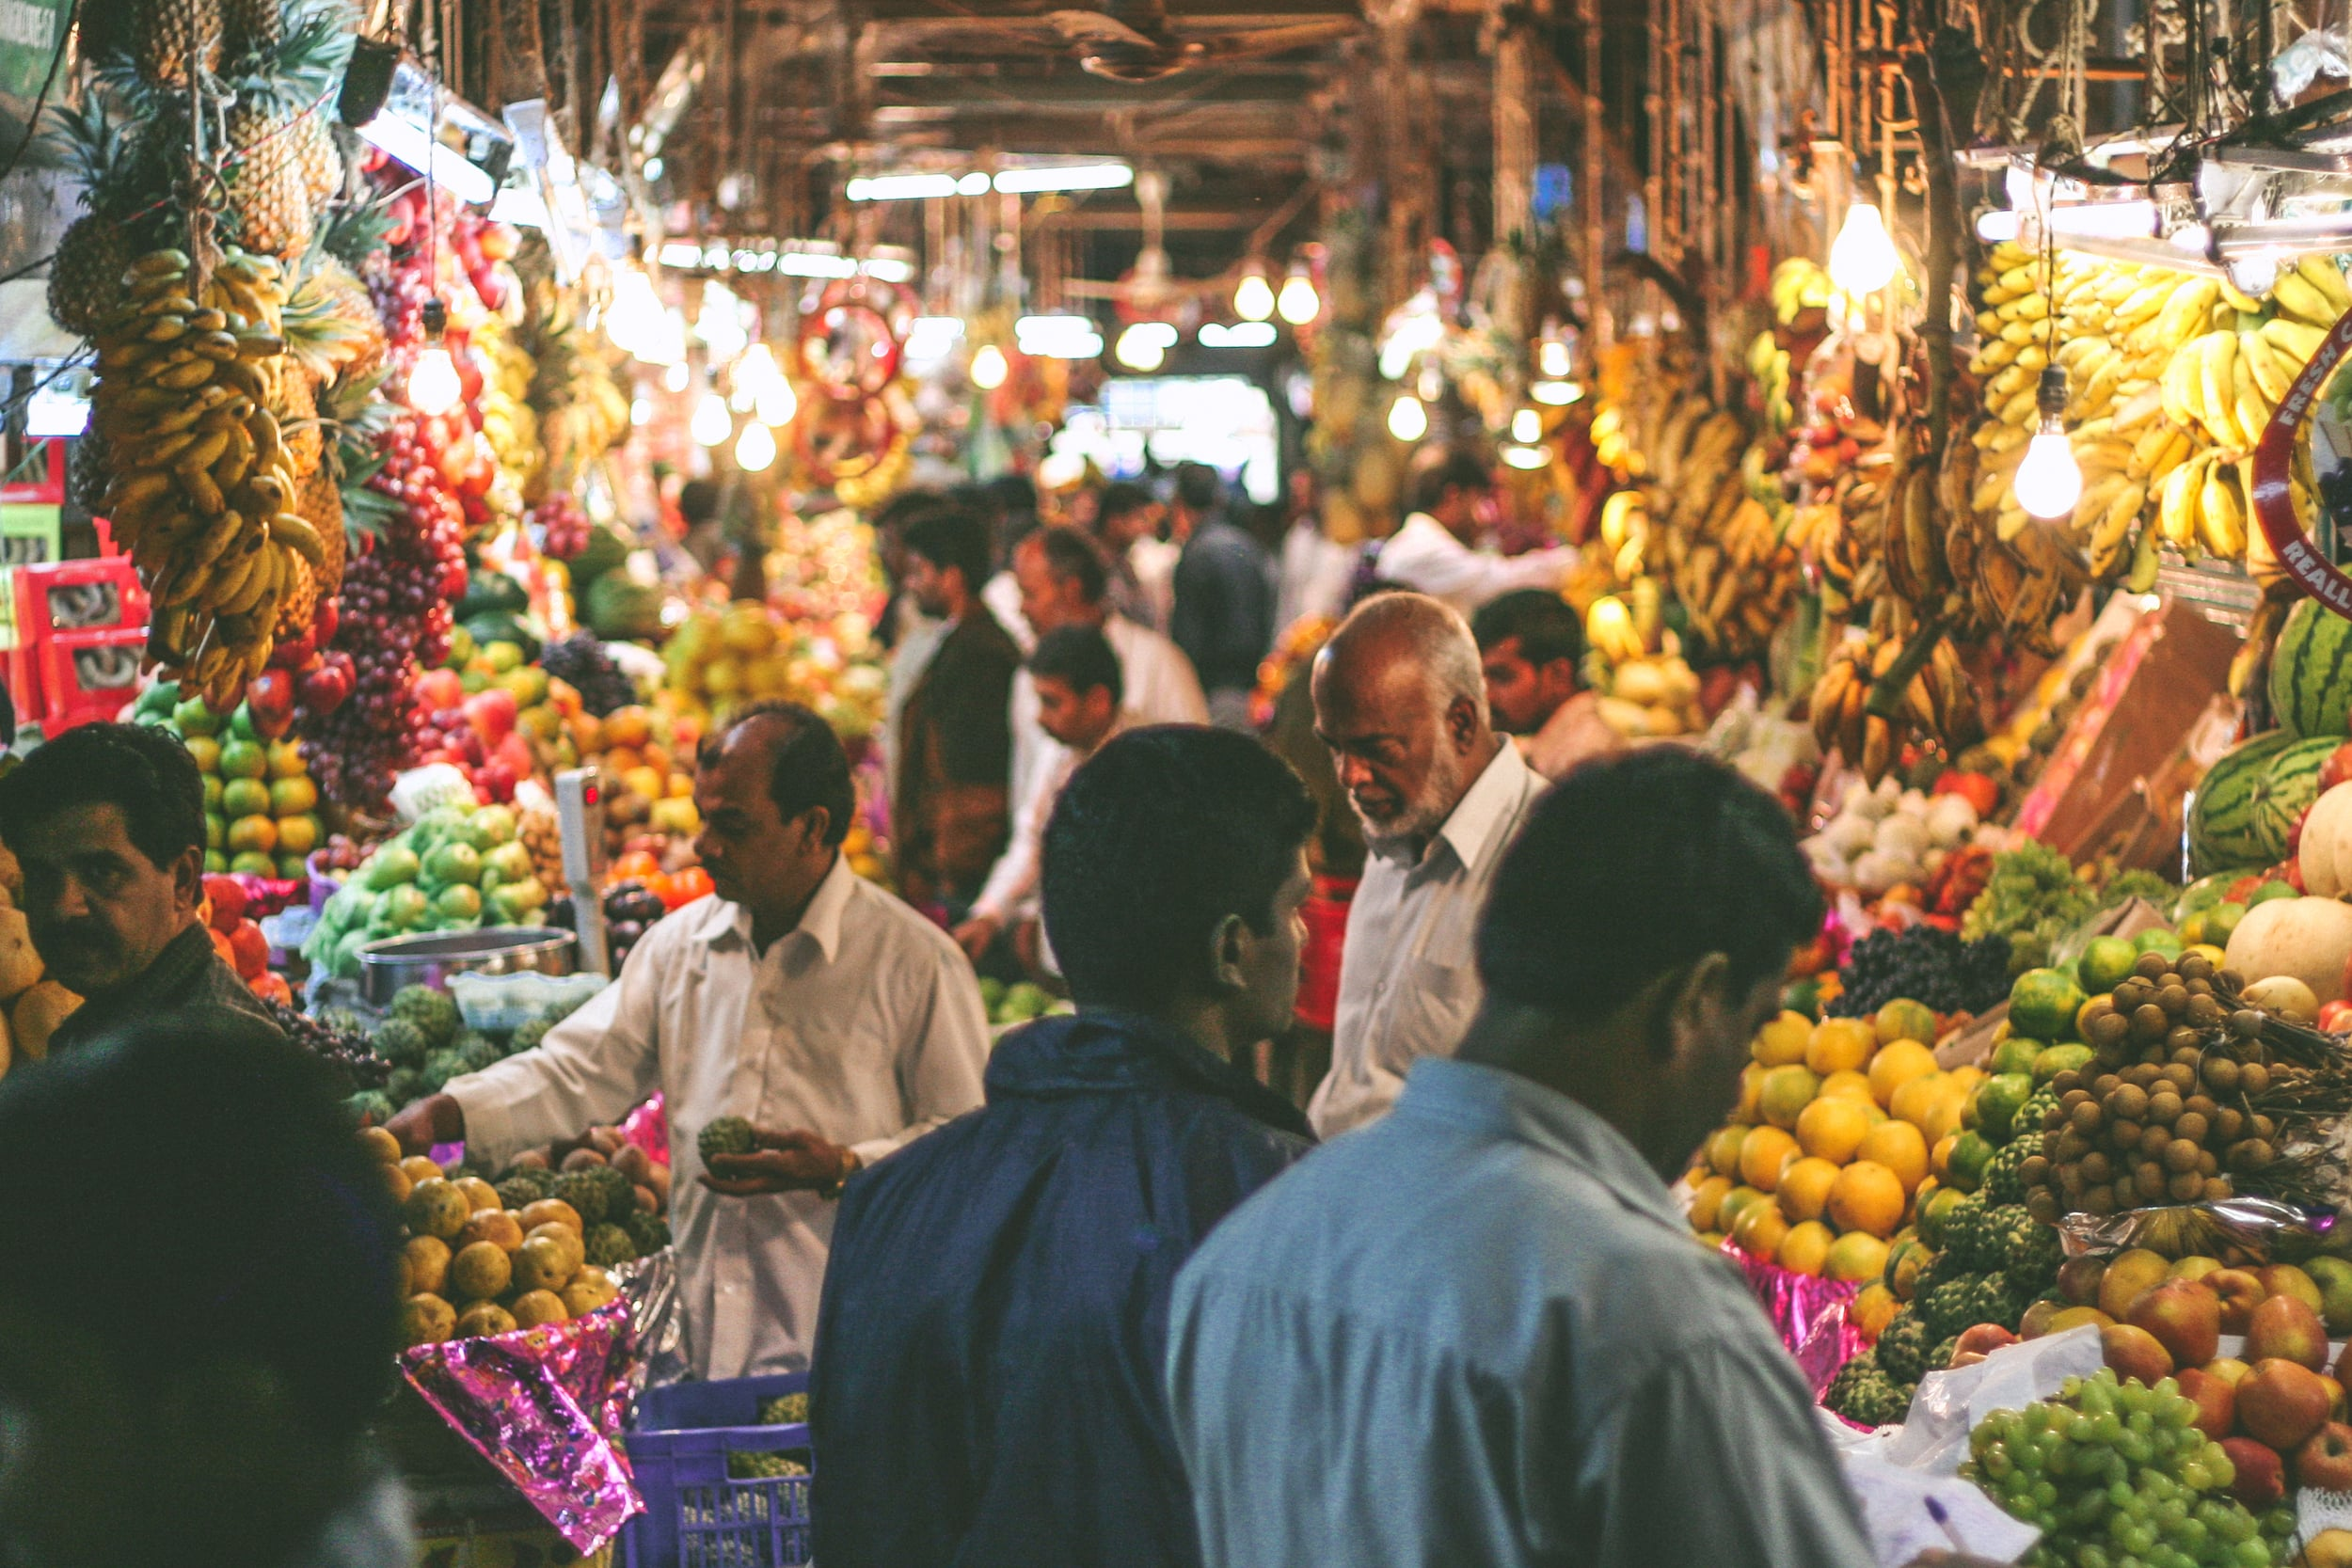 You never feel alone in a market. You will never go home empty handed from these markets. An overdose of sounds scents and sights. But these markets will toy at you, have you going back for more.